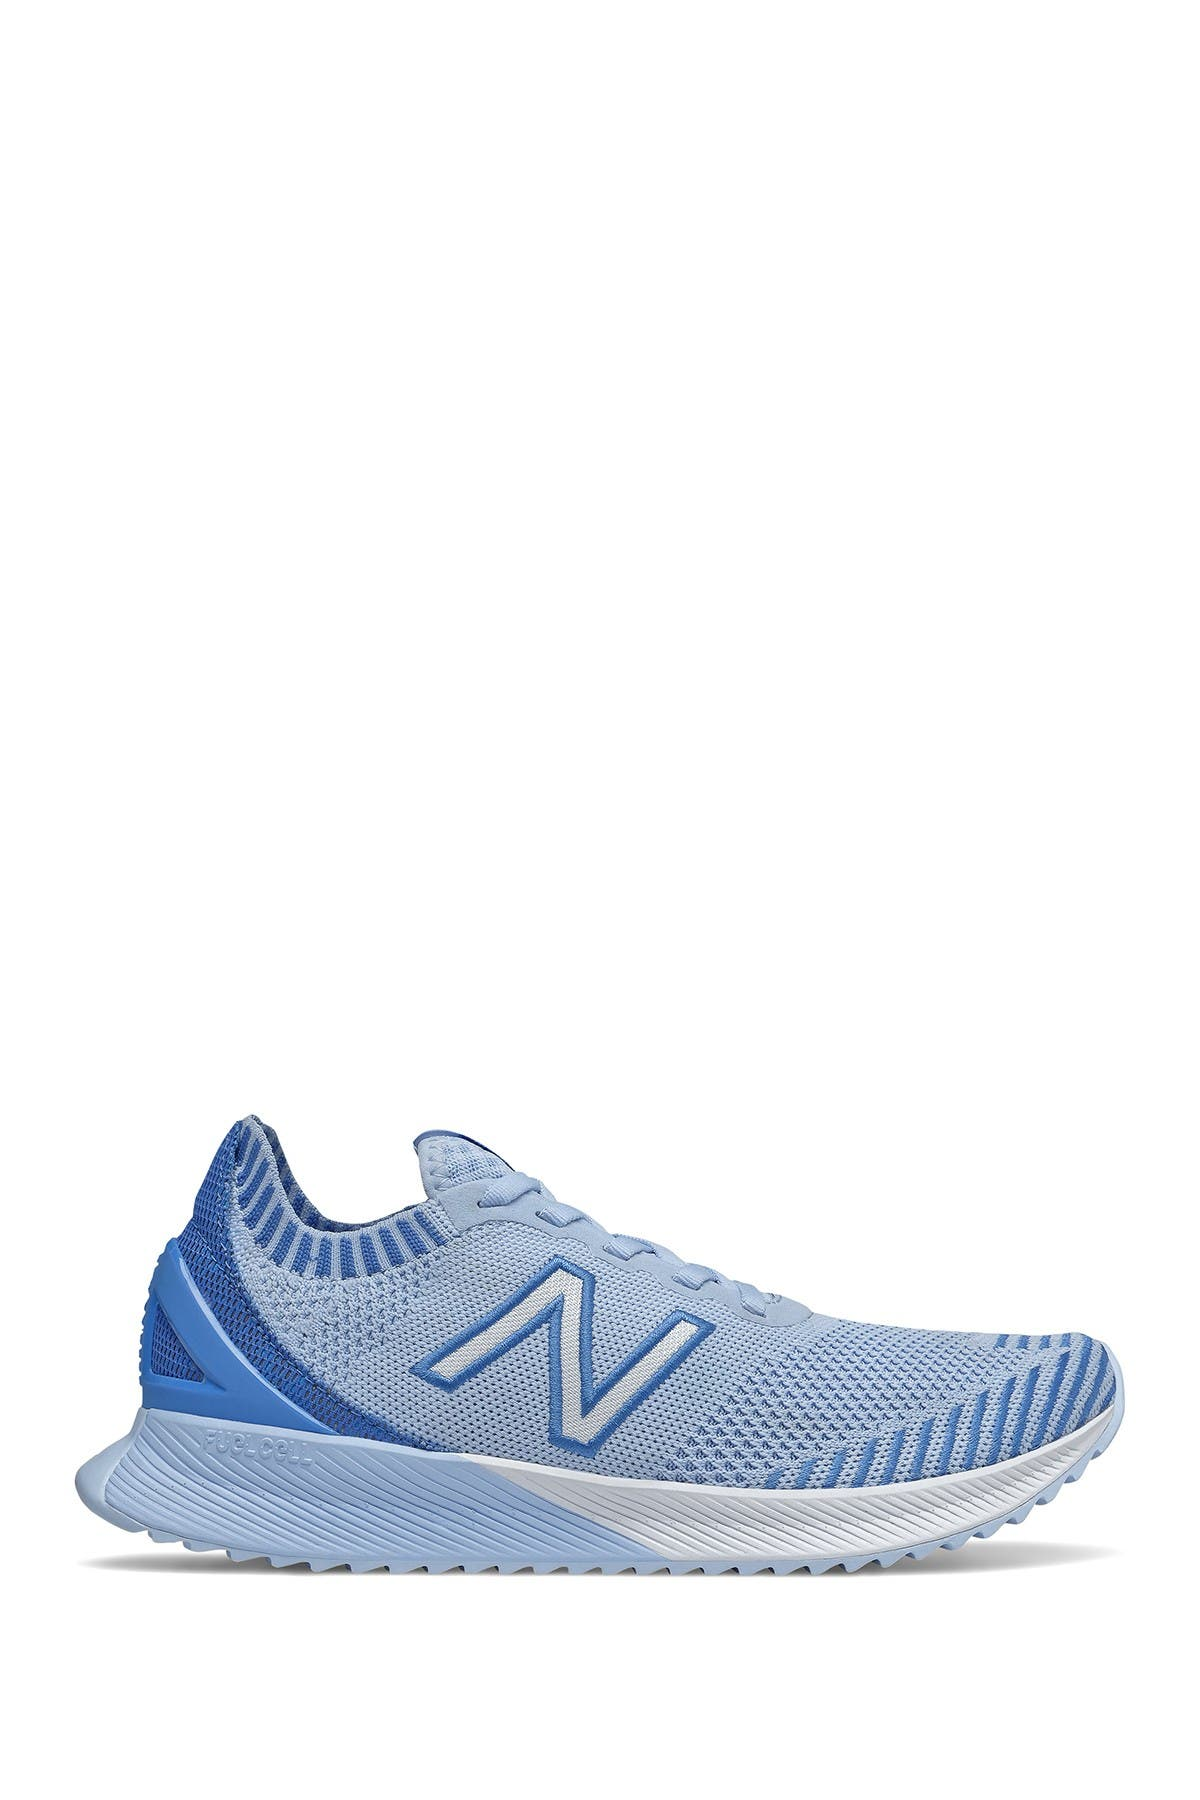 Image of New Balance FuelCell Echo Running Shoe - Wide Width Available